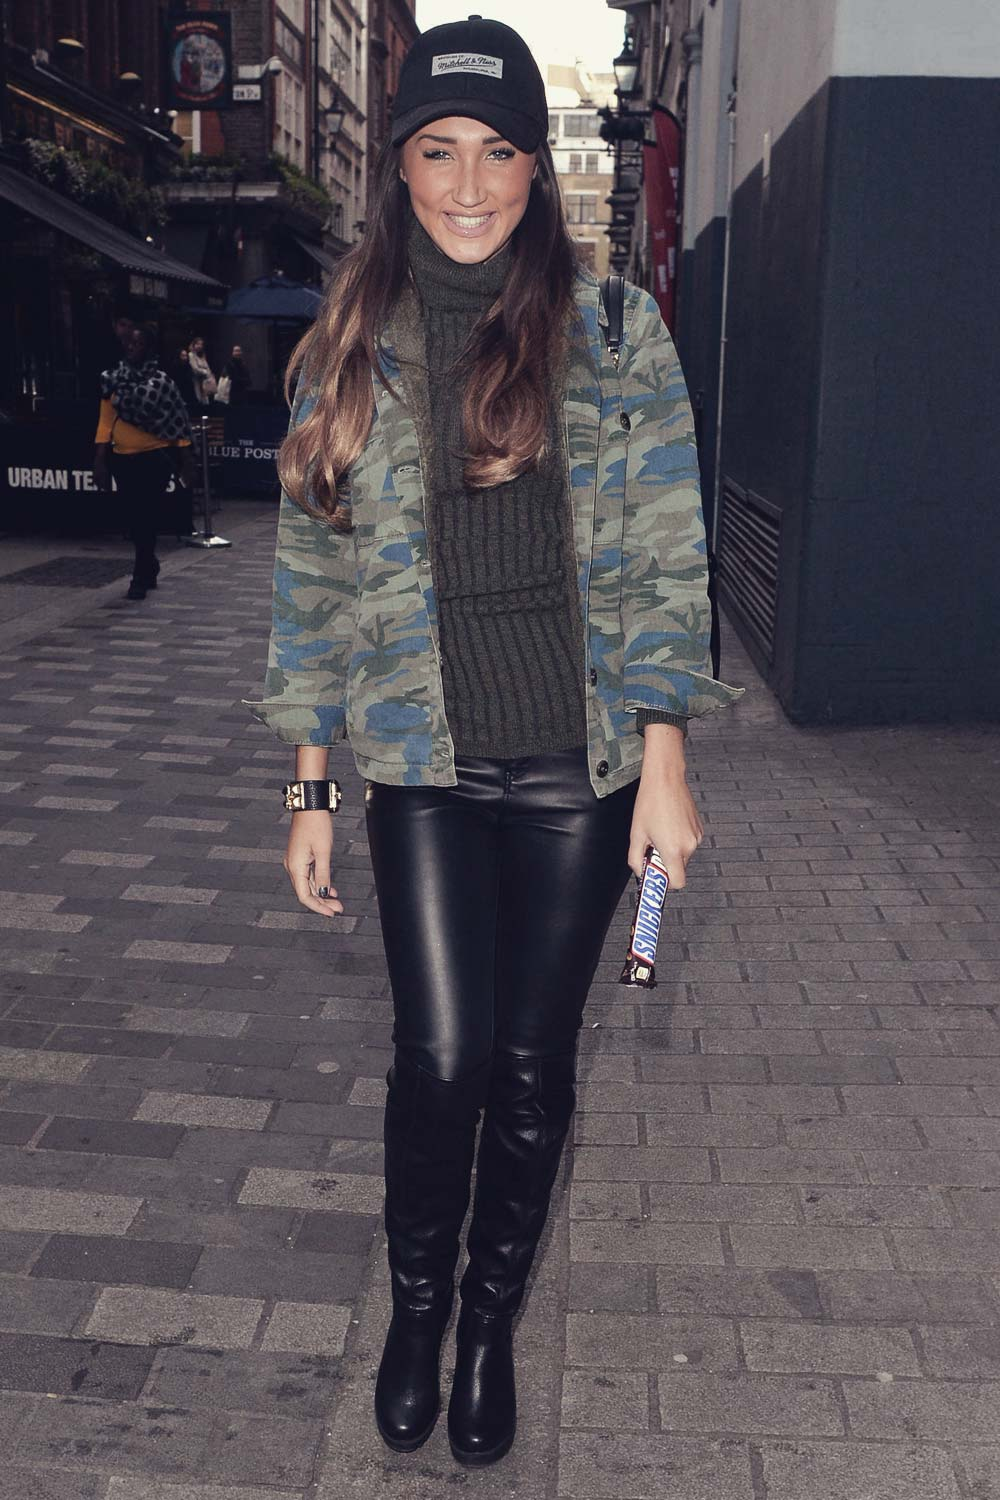 Megan Mckenna Out In London Leather Celebrities